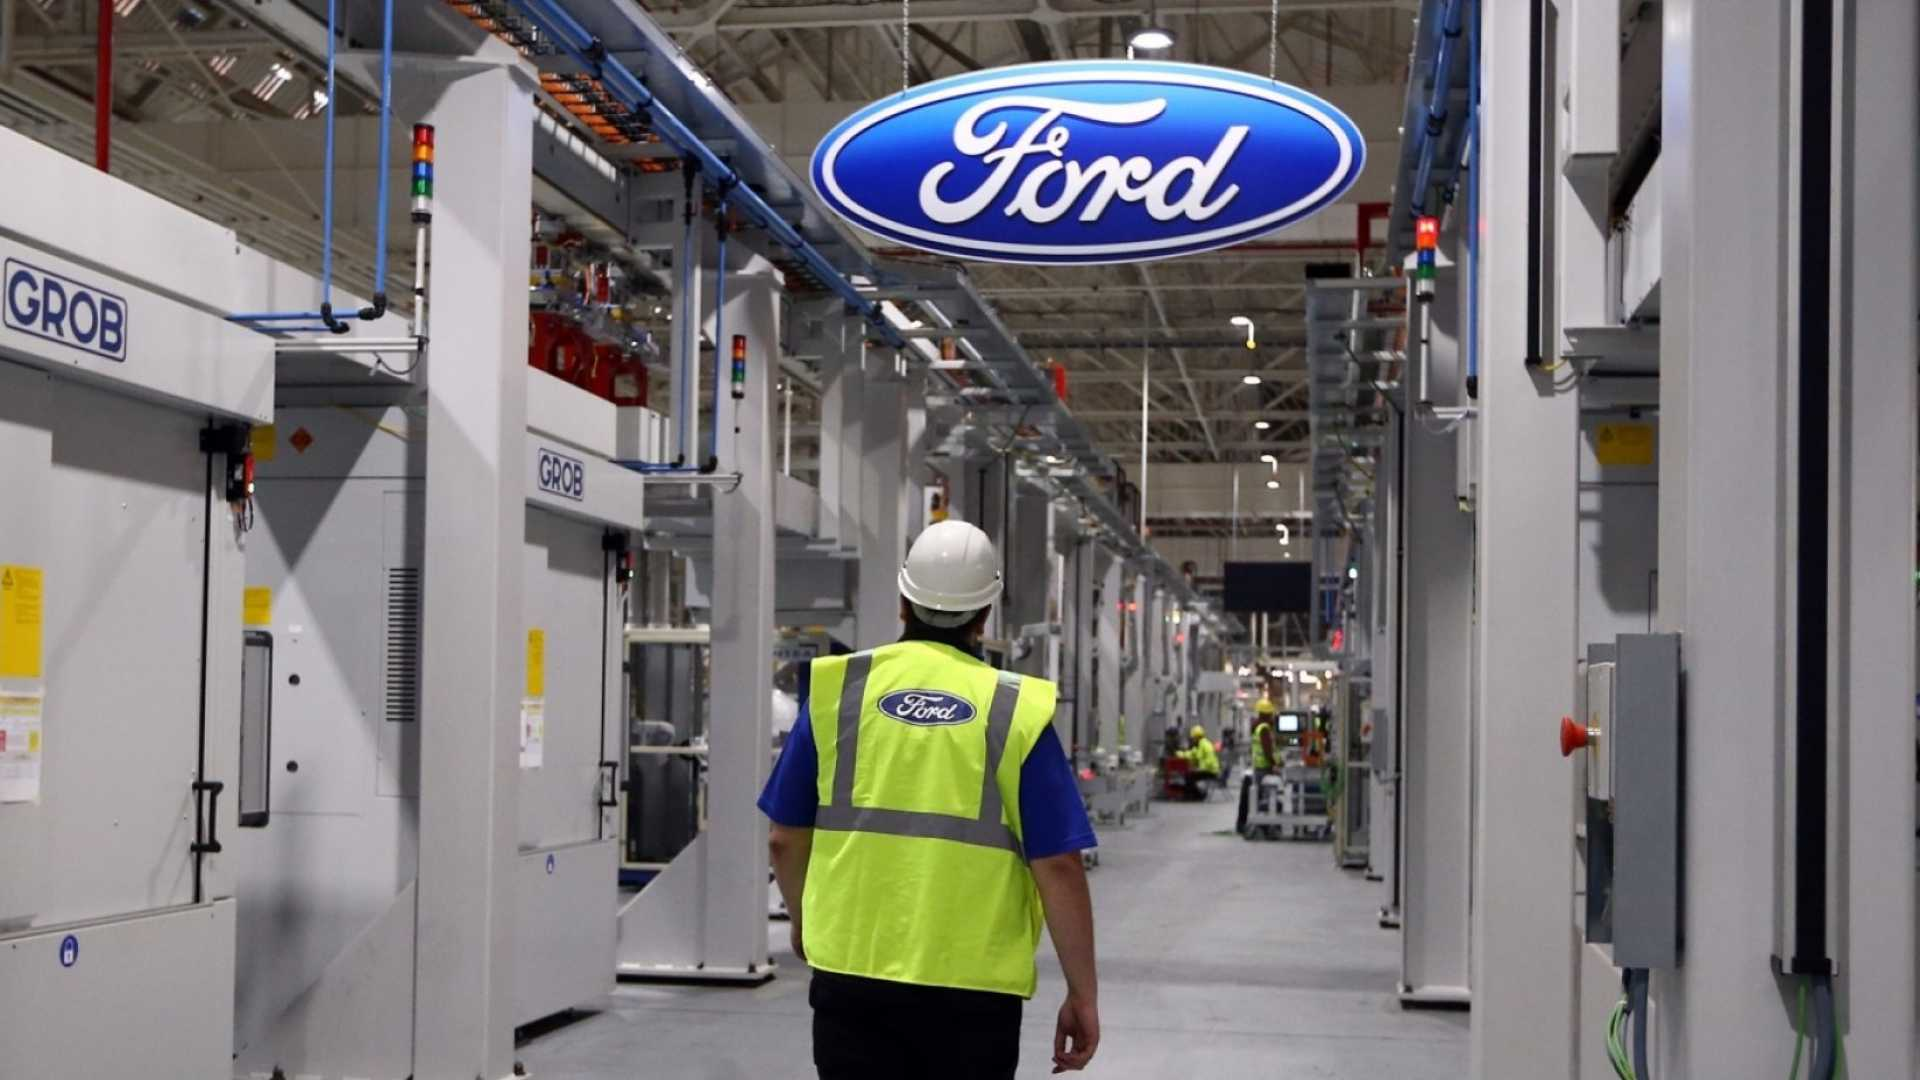 Ford's Layoffs Just Taught a Valuable Lesson in Kindness for Entrepreneurs